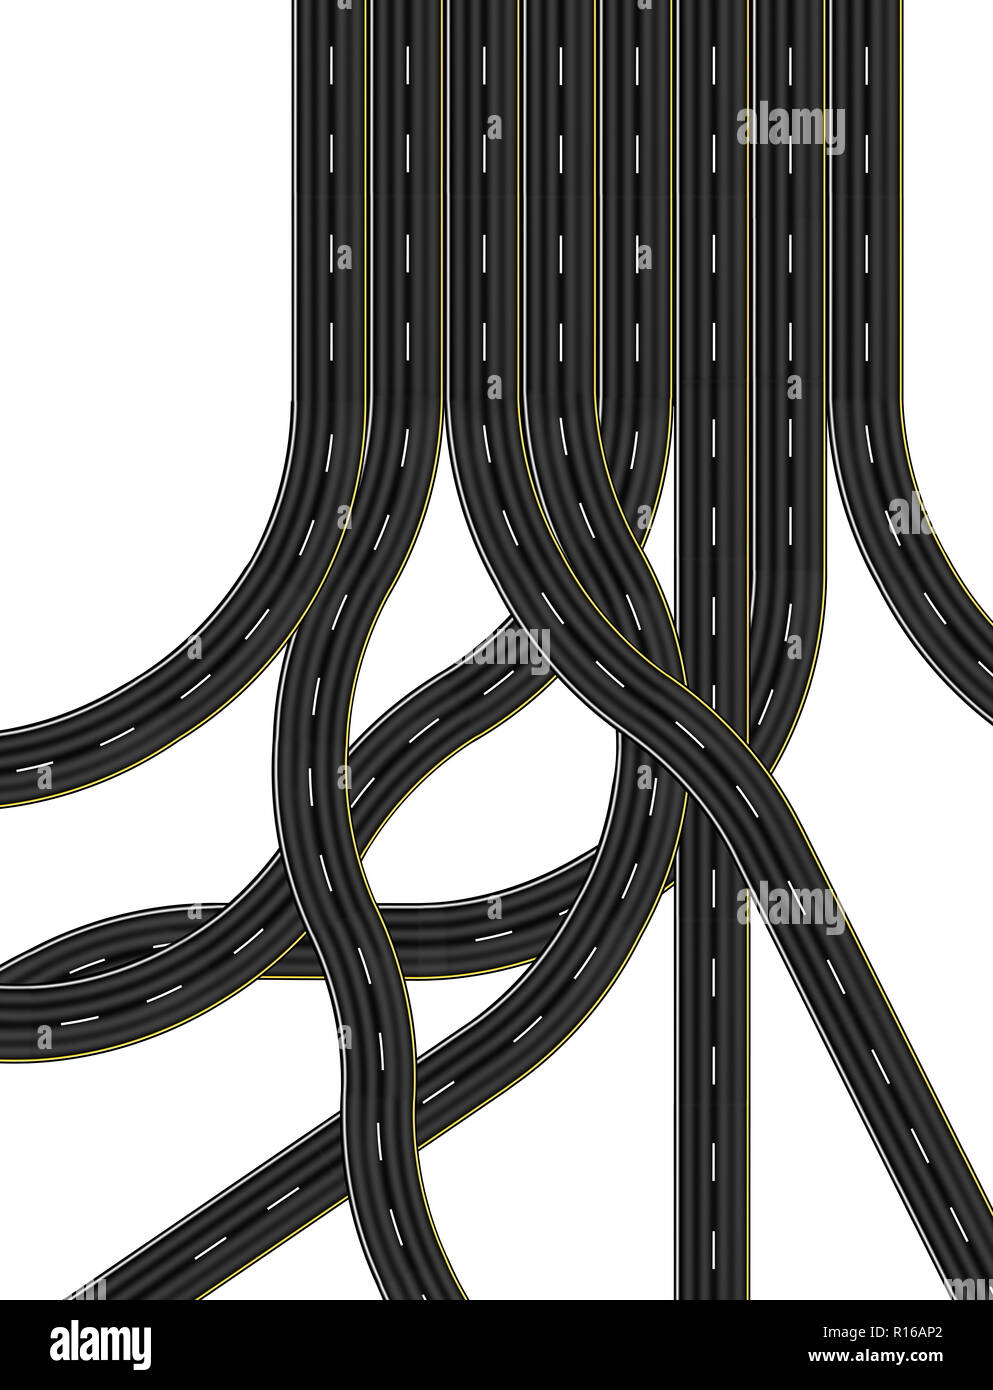 Intersections and slip roads leading to eight lane highway, digital image, overhead view - Stock Image